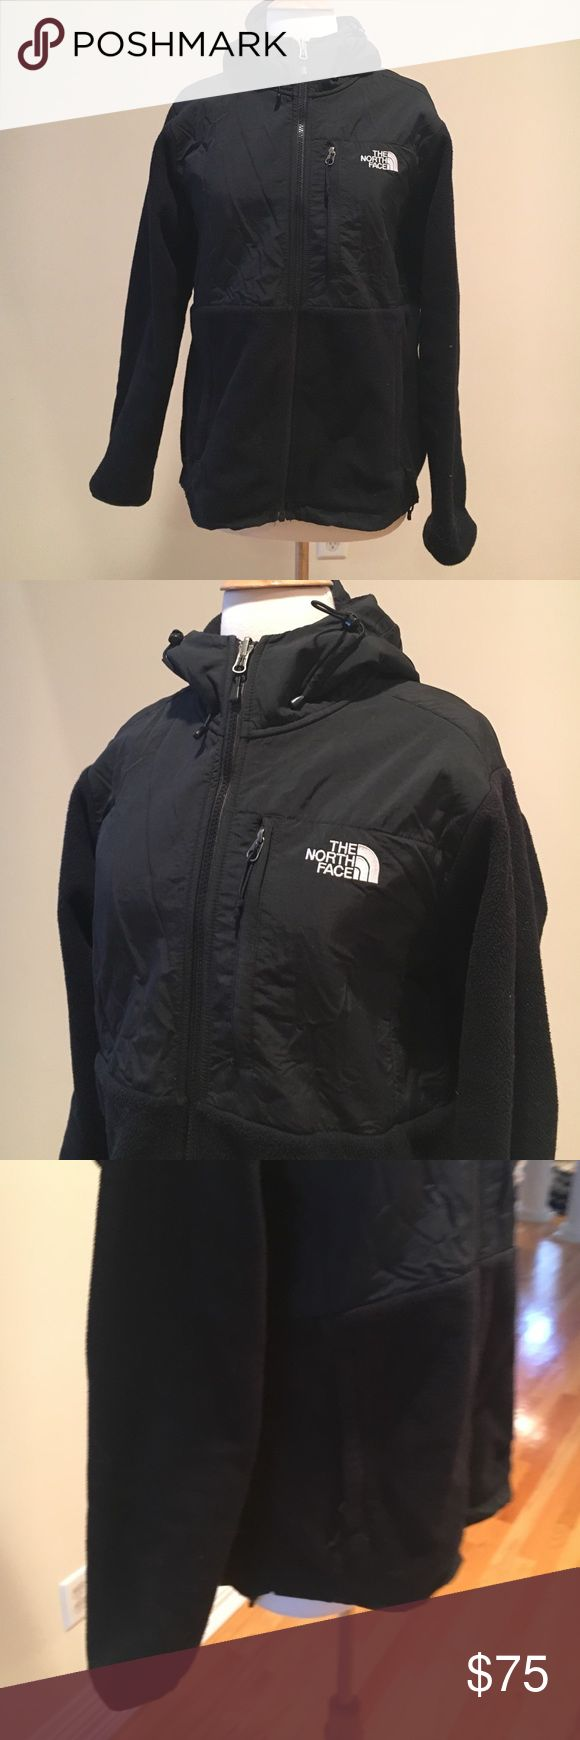 The North Face winter jacket ⭐️Excellent condition. Fleece lined. Hooded. No flaws The North Face Jackets & Coats